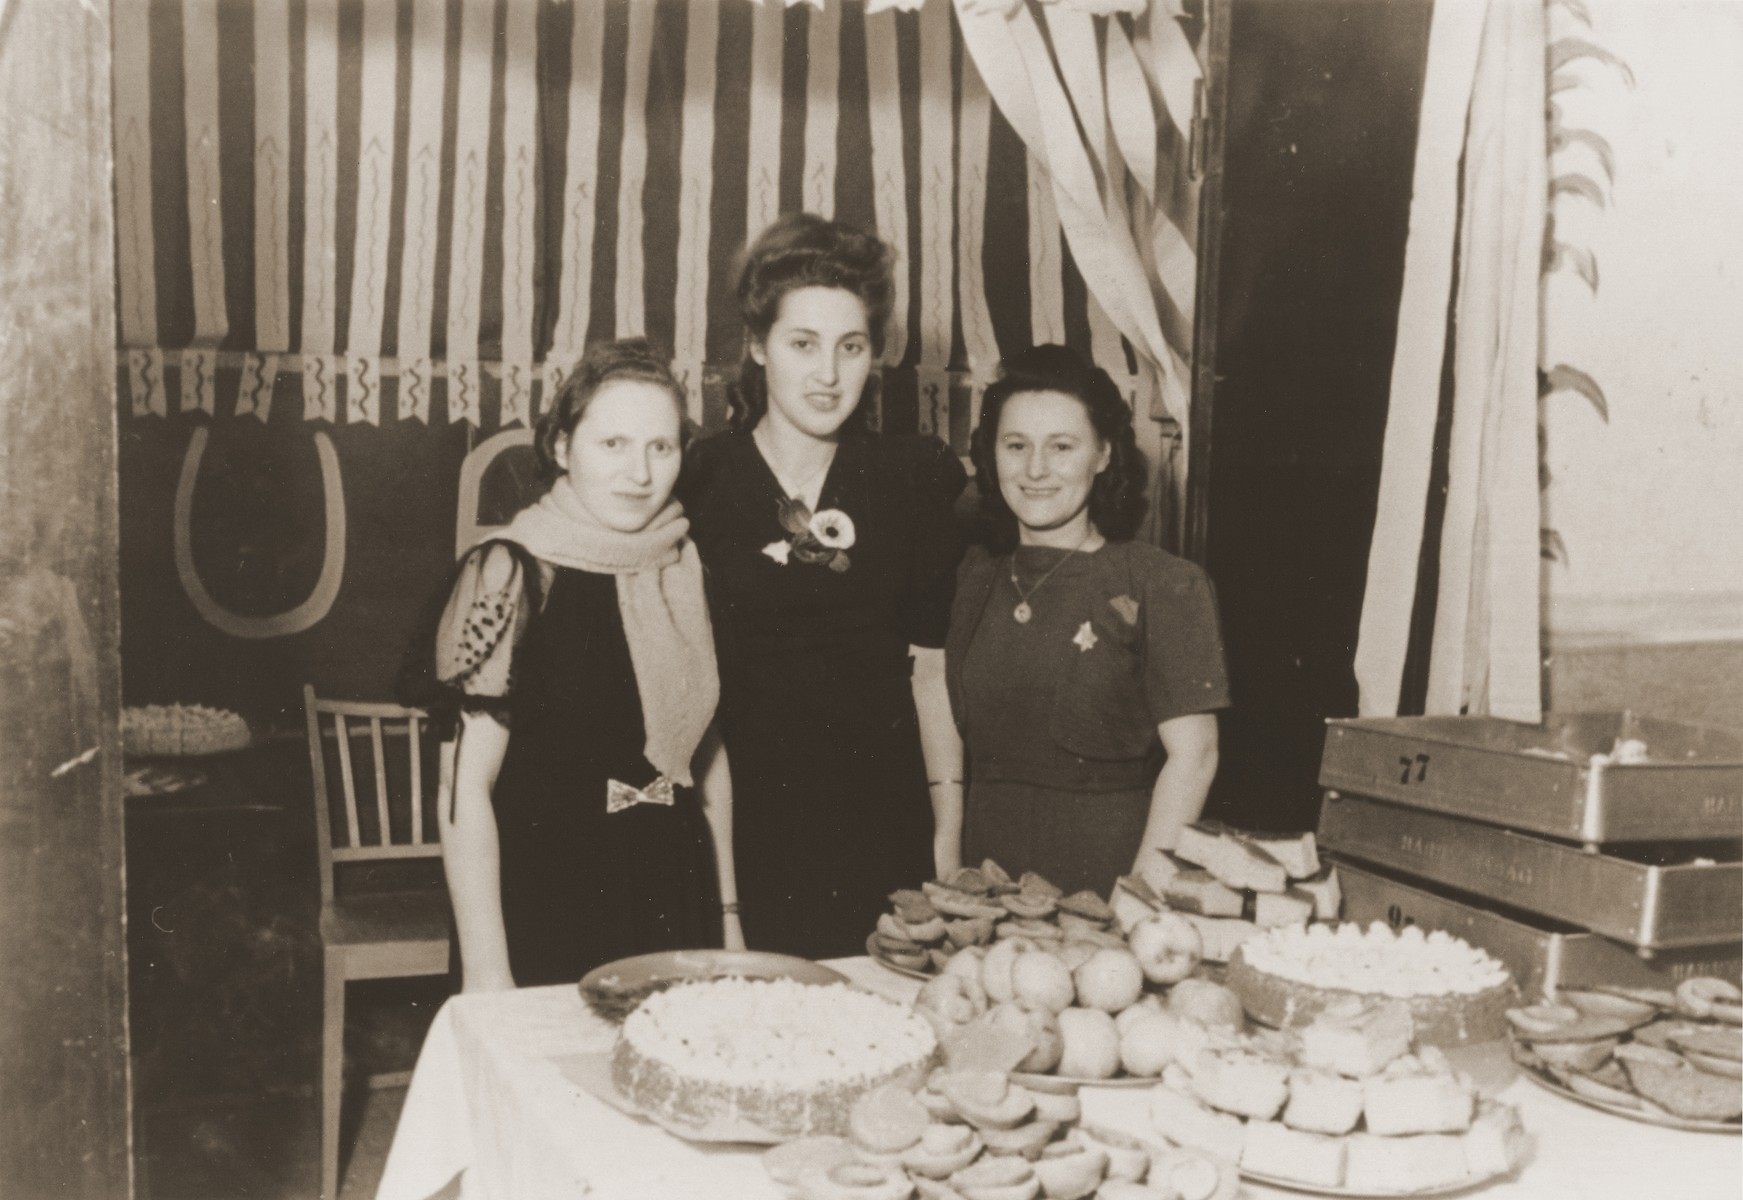 Mania Mell and Pola Rejchman set out refreshments for a party in the Vinnhorst DP center.